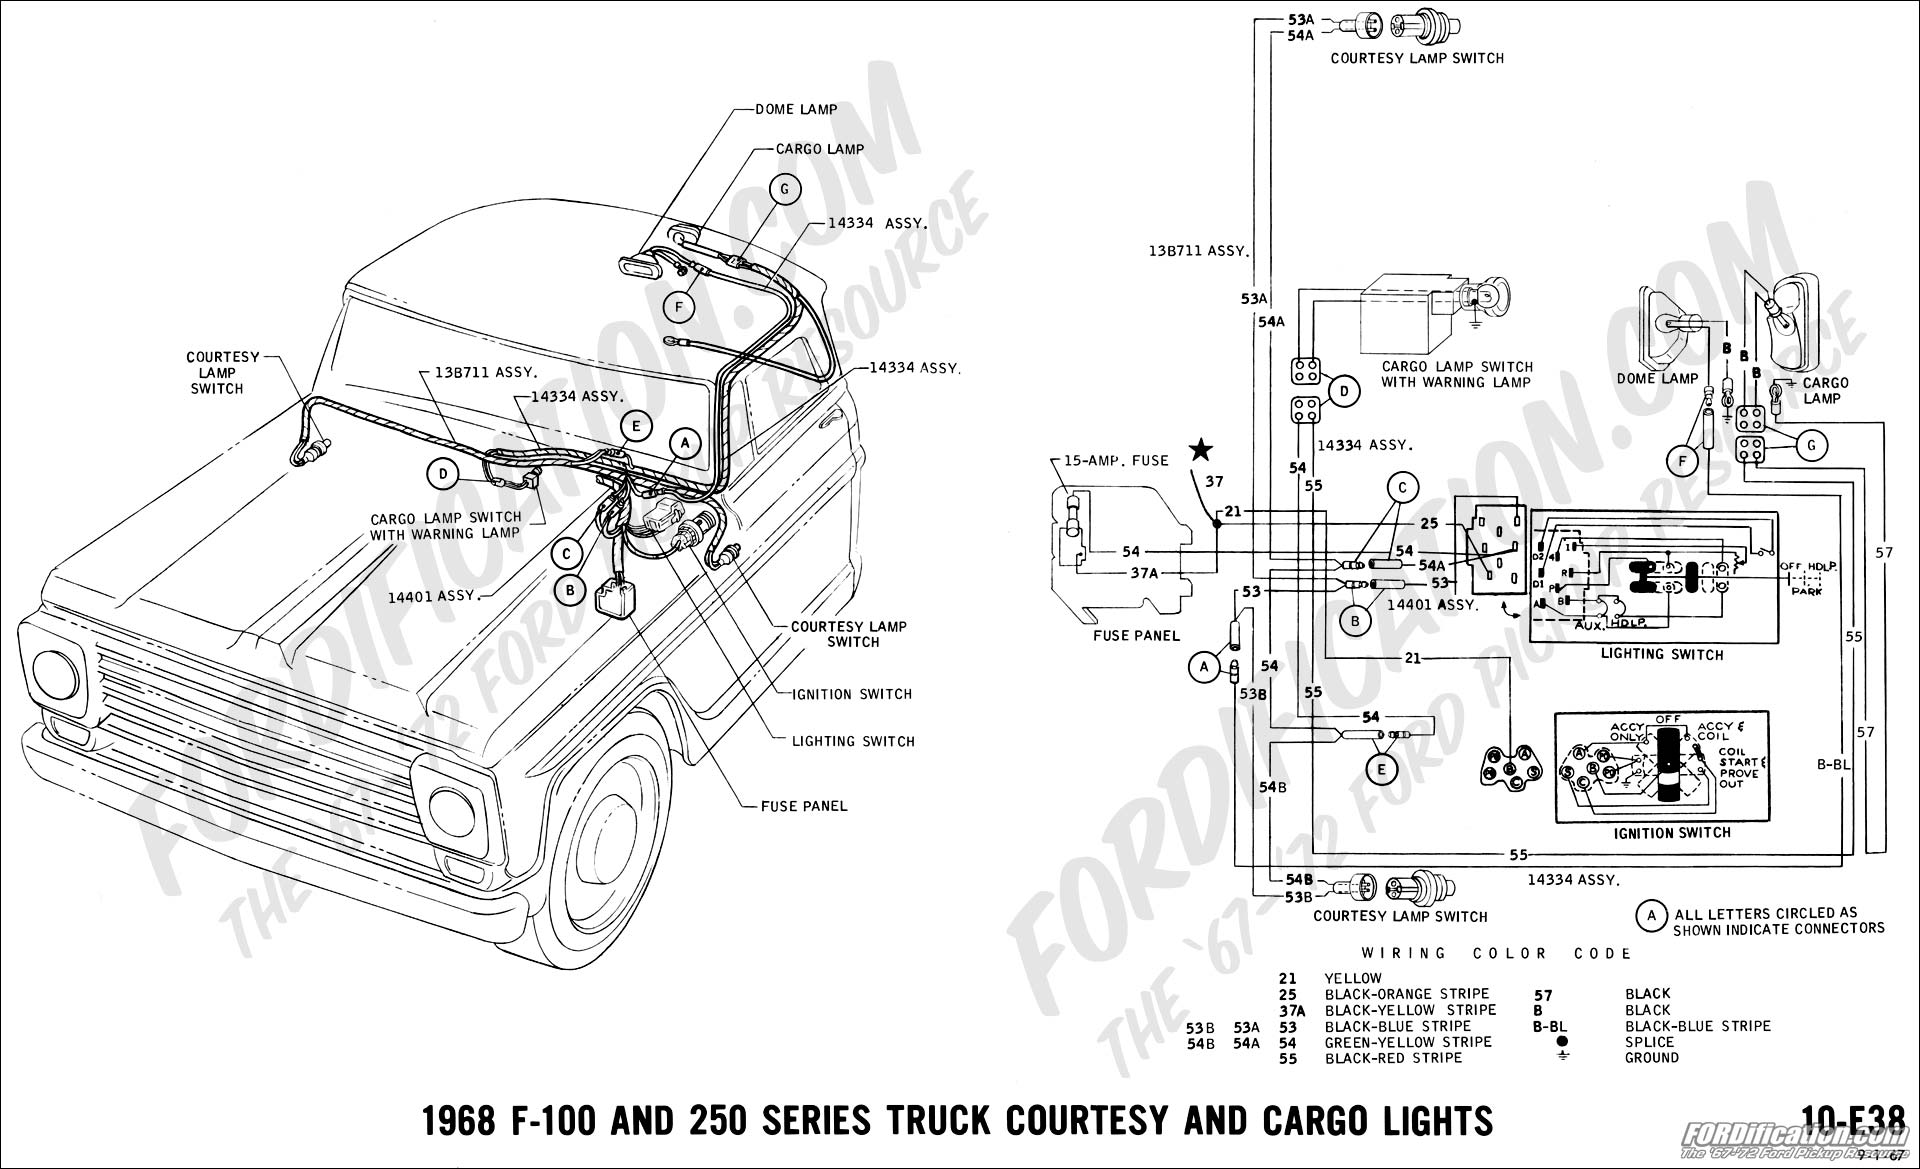 68 40 ford truck technical drawings and schematics section h wiring camper wiring harness diagram at panicattacktreatment.co